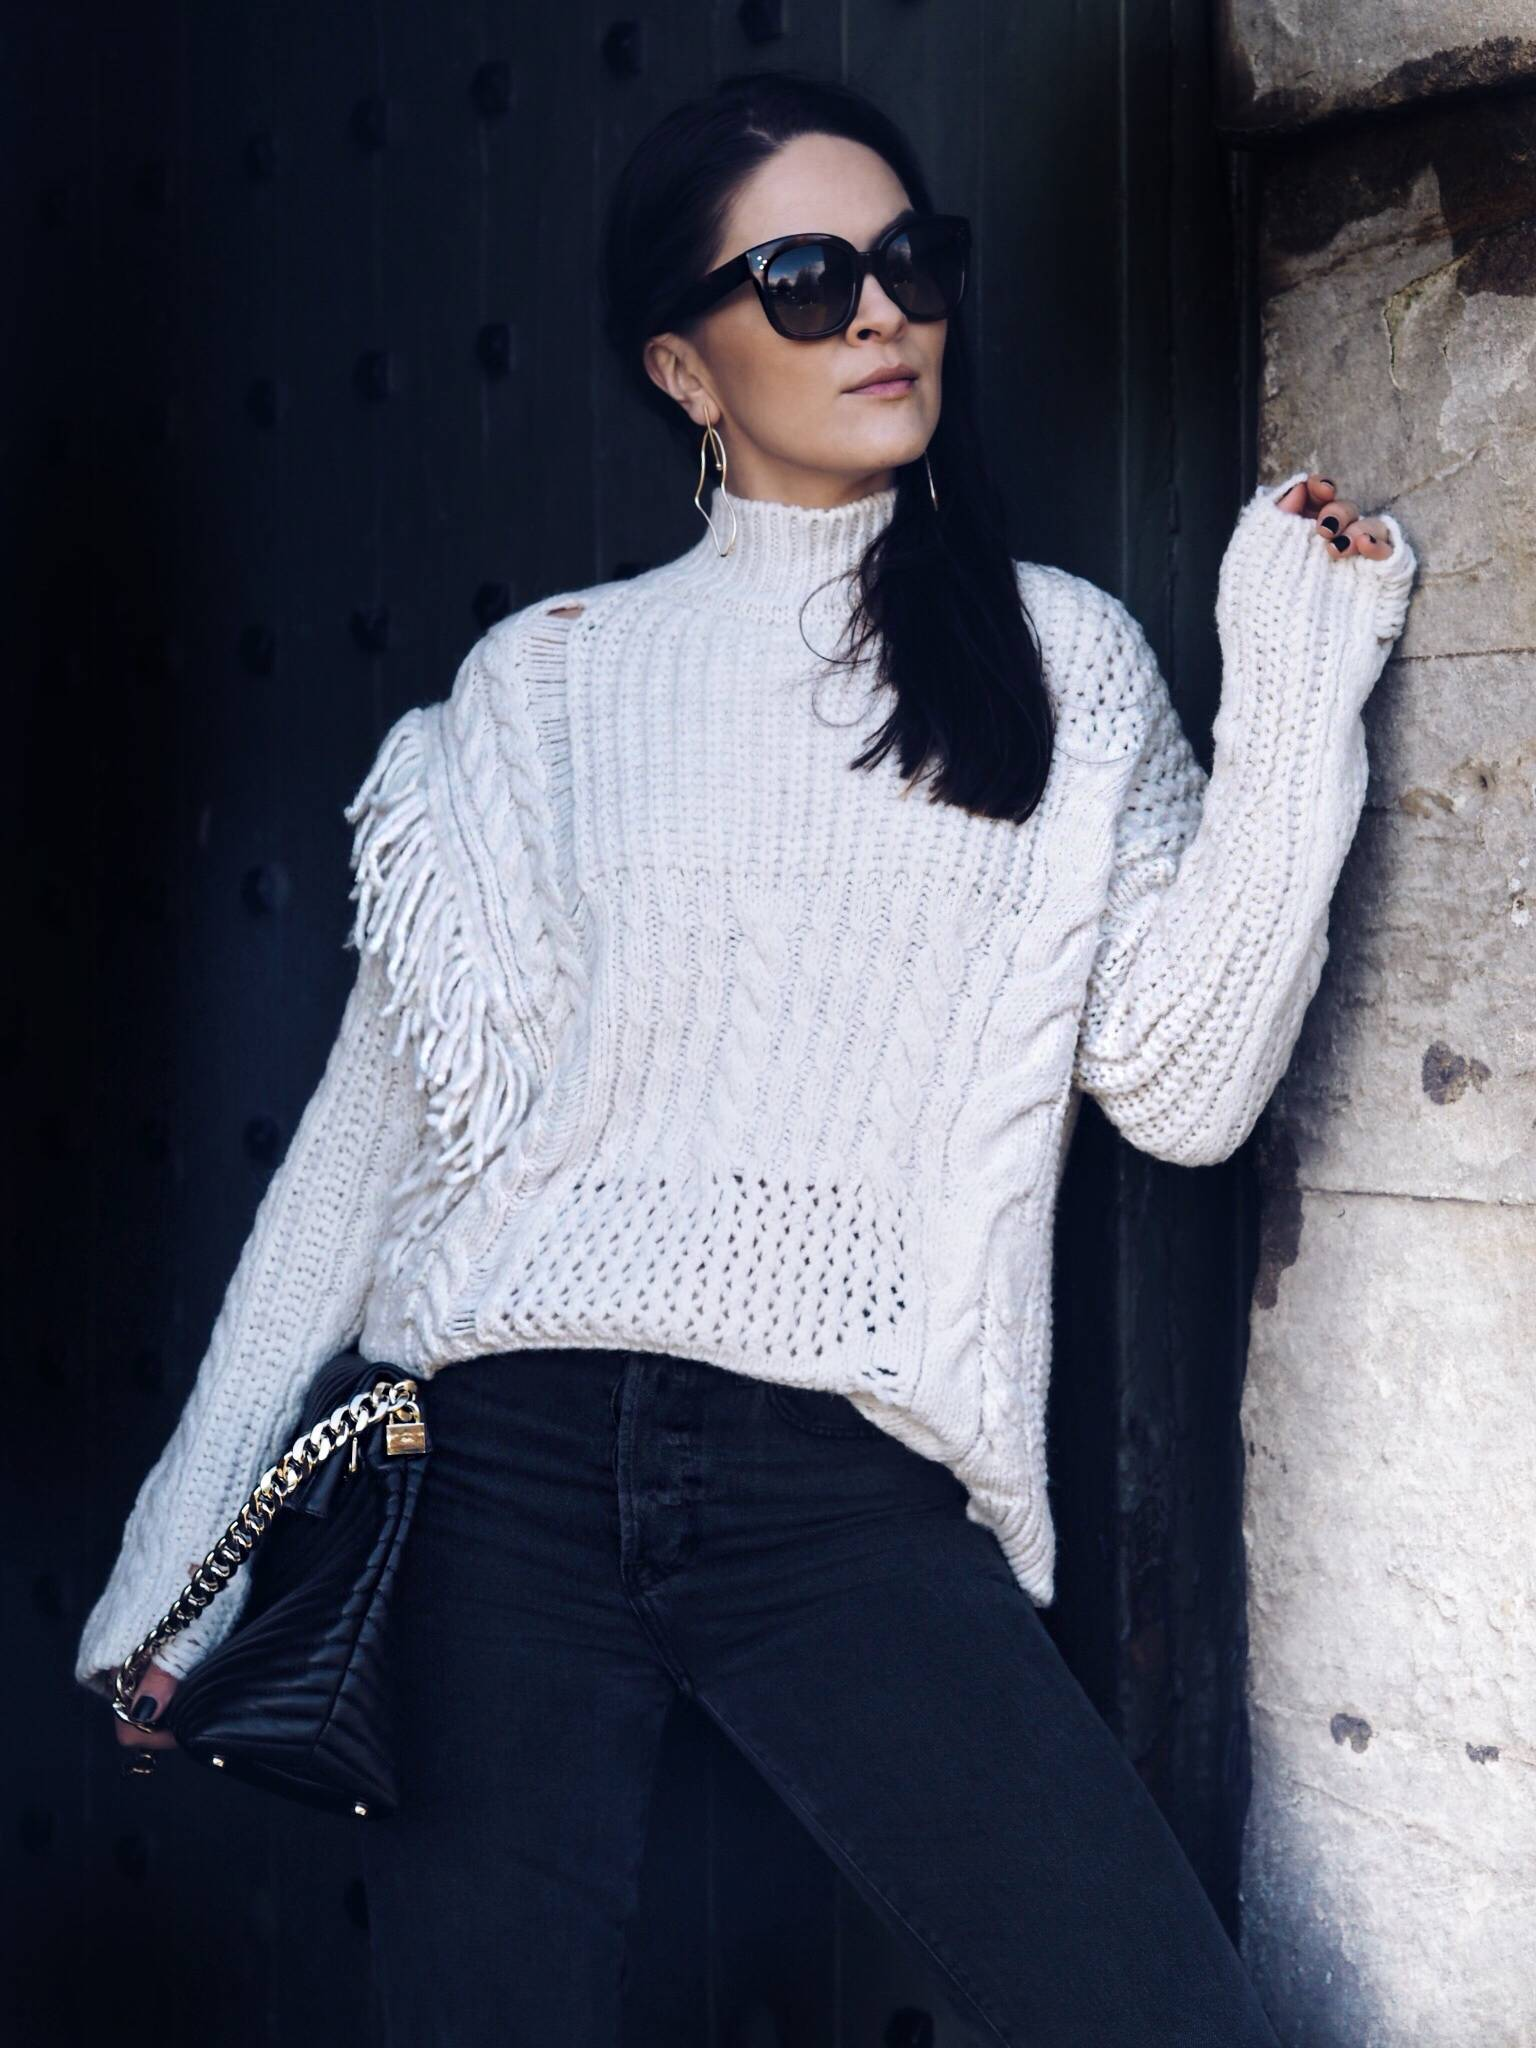 River-Island-knitwear-and-shoes-streetstyle-fashion-blogger-LAFOTKA